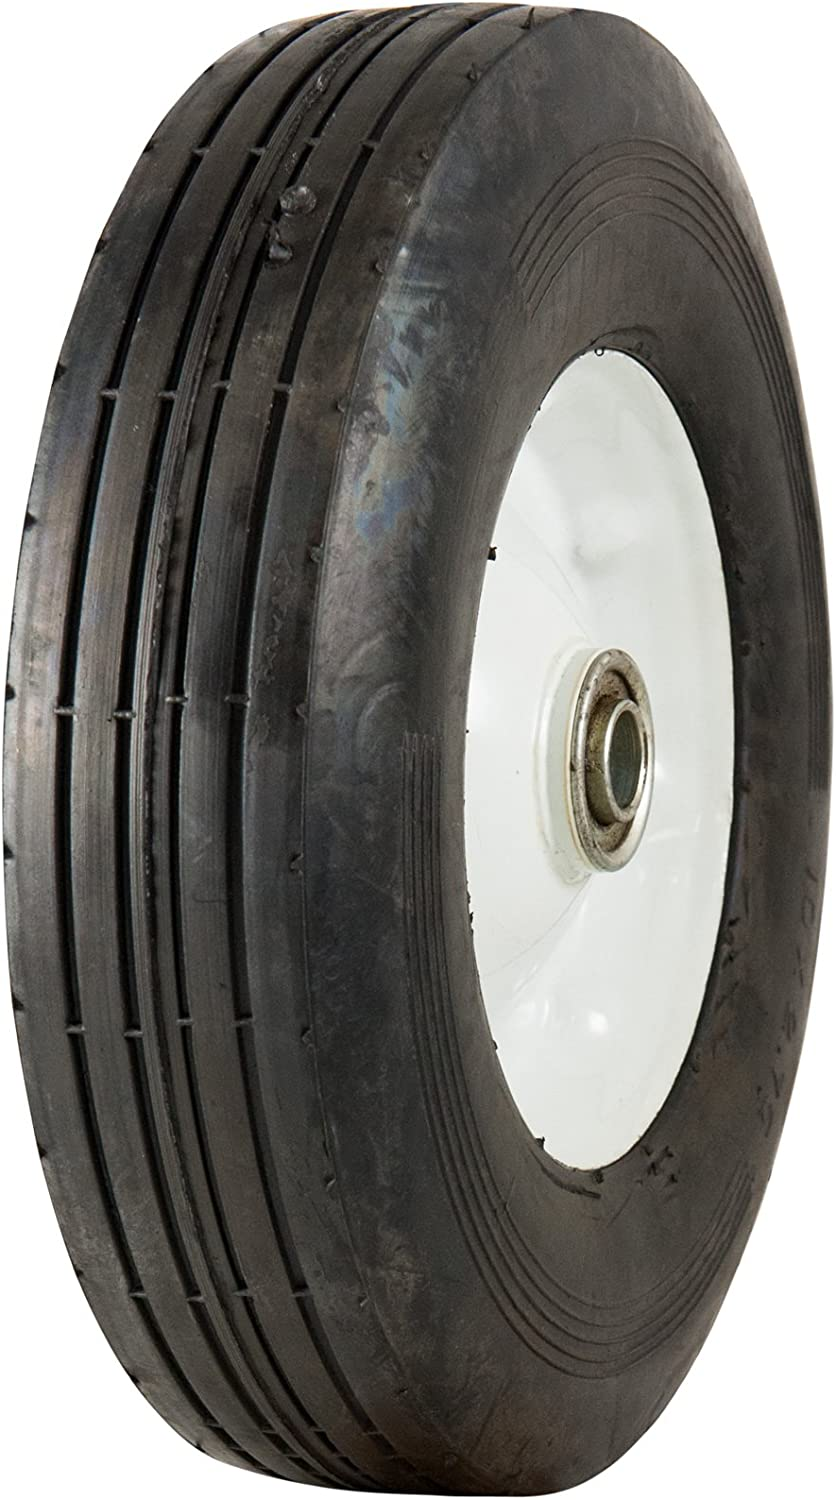 "Marathon 10x2.75"" Semi-Pneumatic Tire on Wheel"